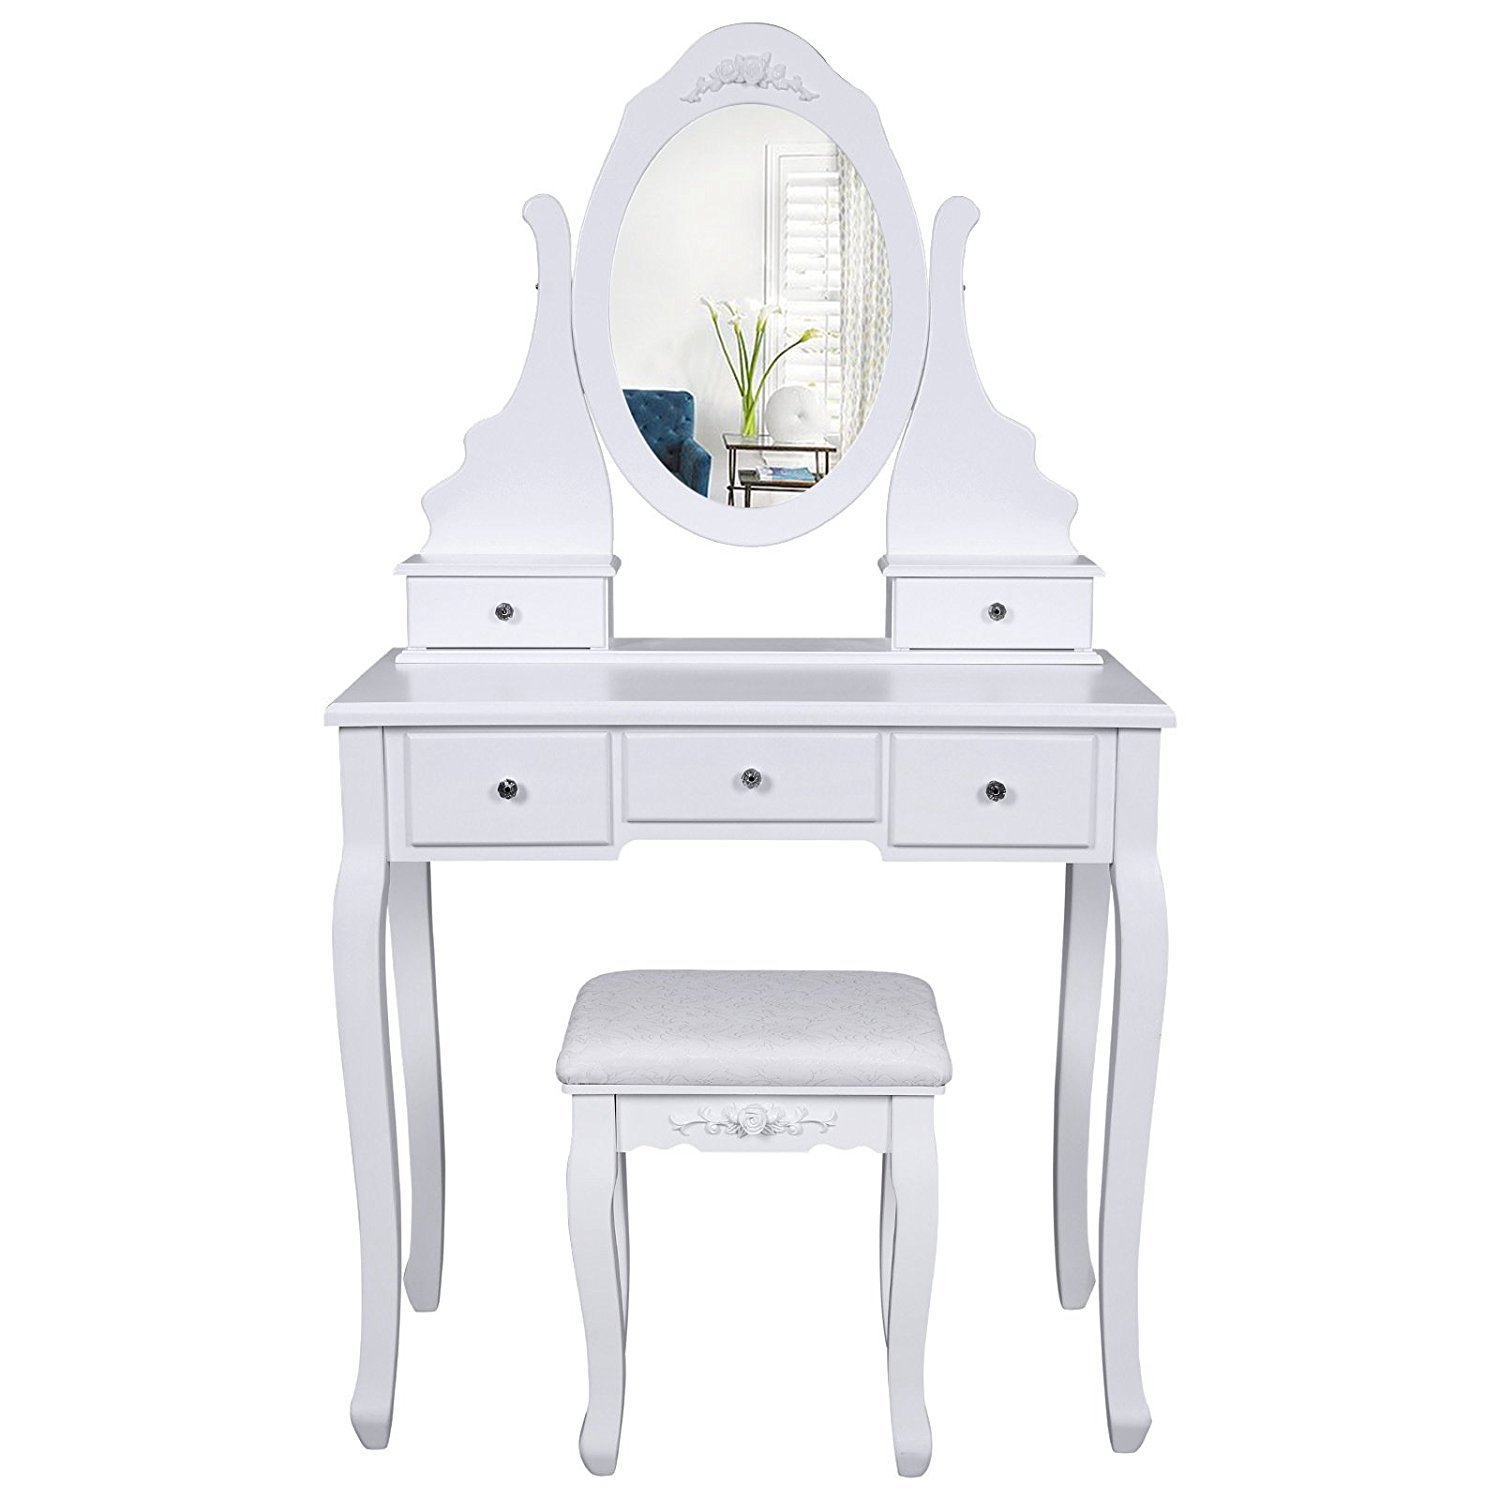 Coiffeuse Design Blanche Diy Makeup Vanity Table - Home Furniture Design